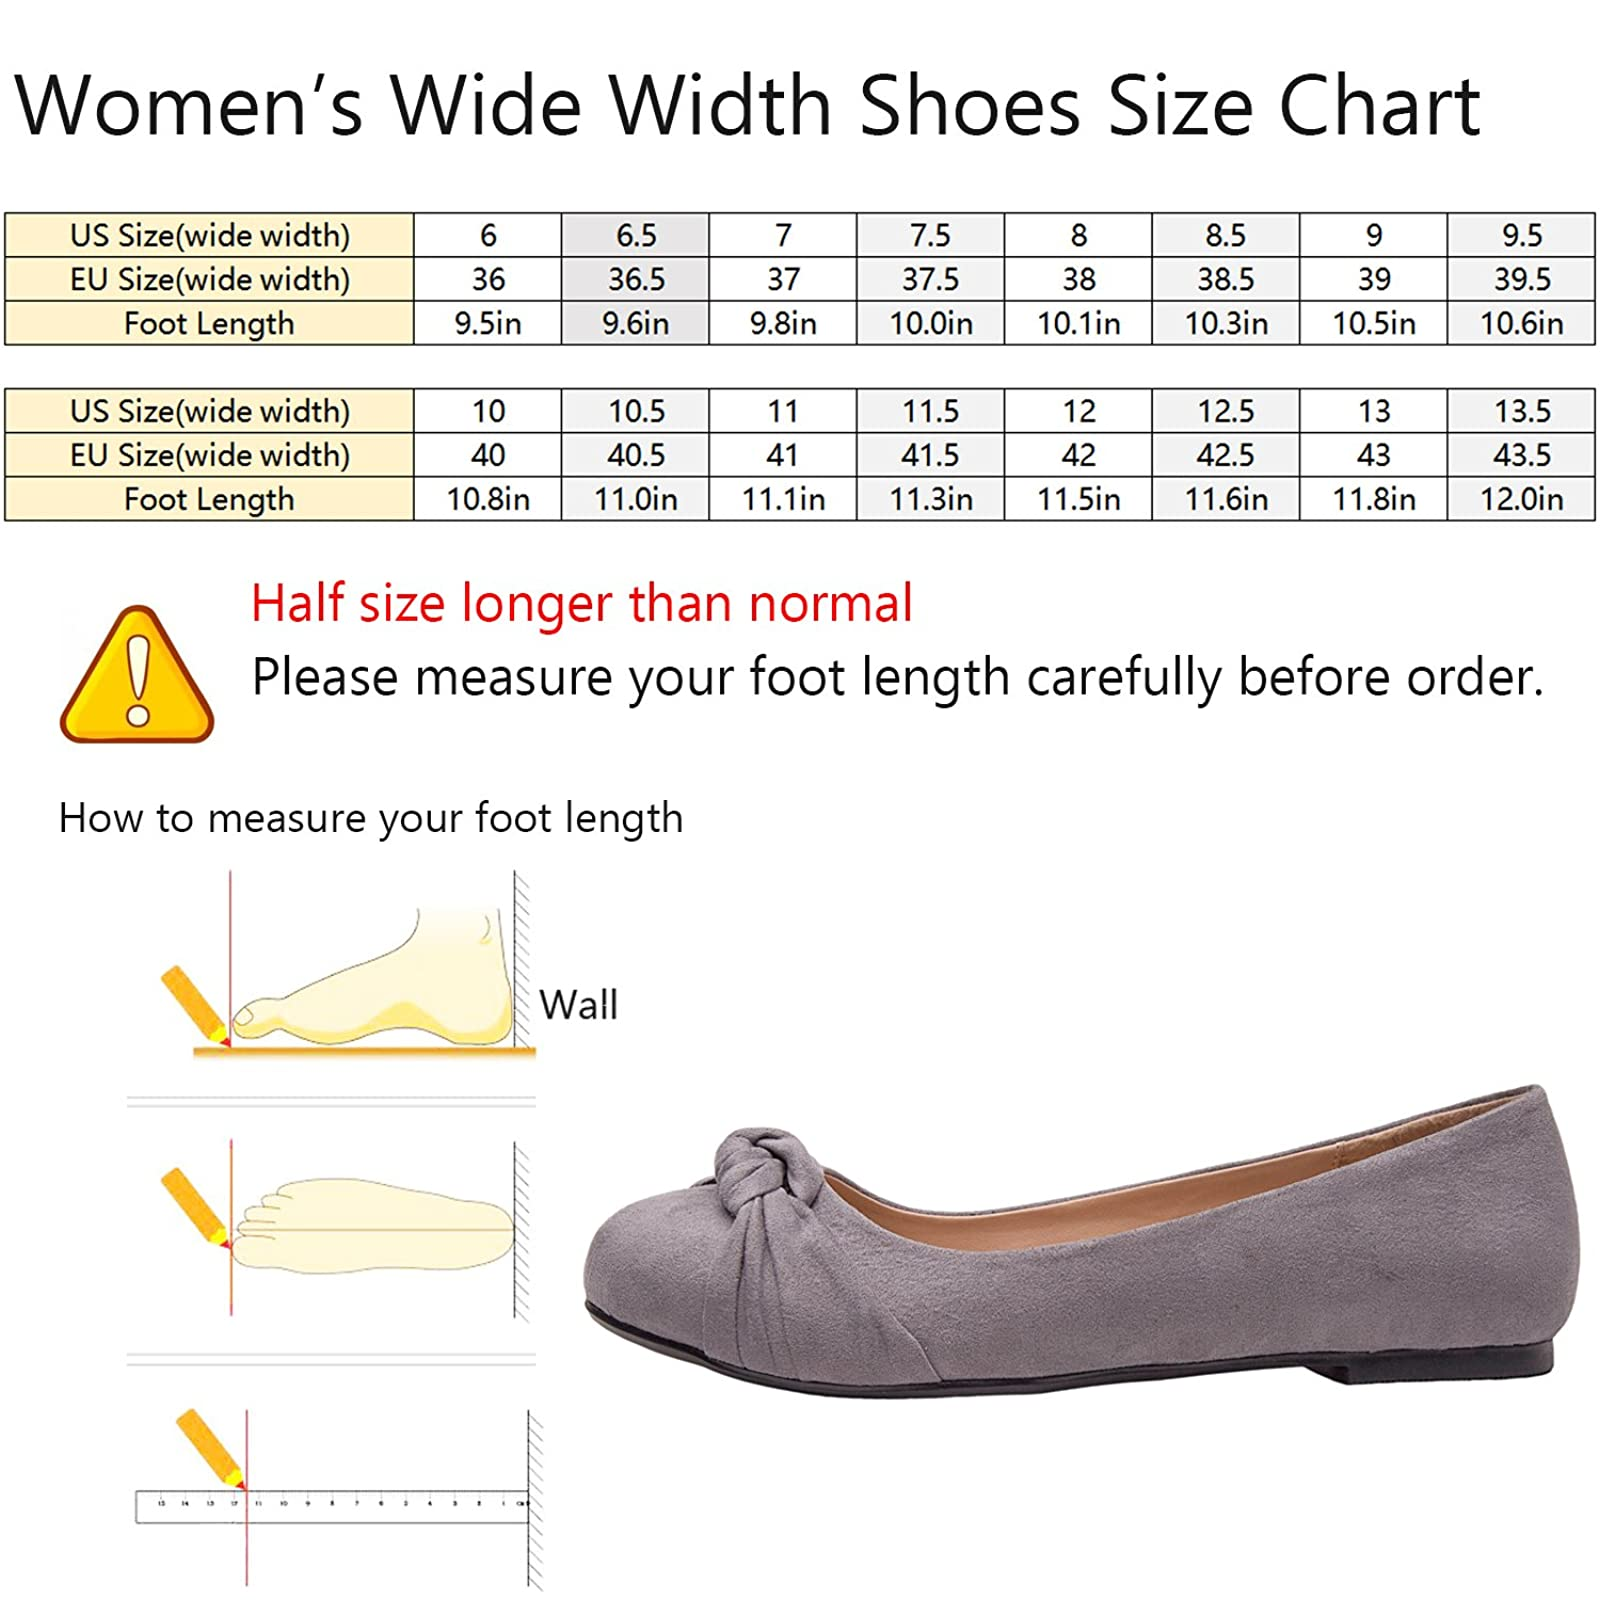 Luoika Women's Wide Width Flat Shoes - Black Micro Fabric - 1